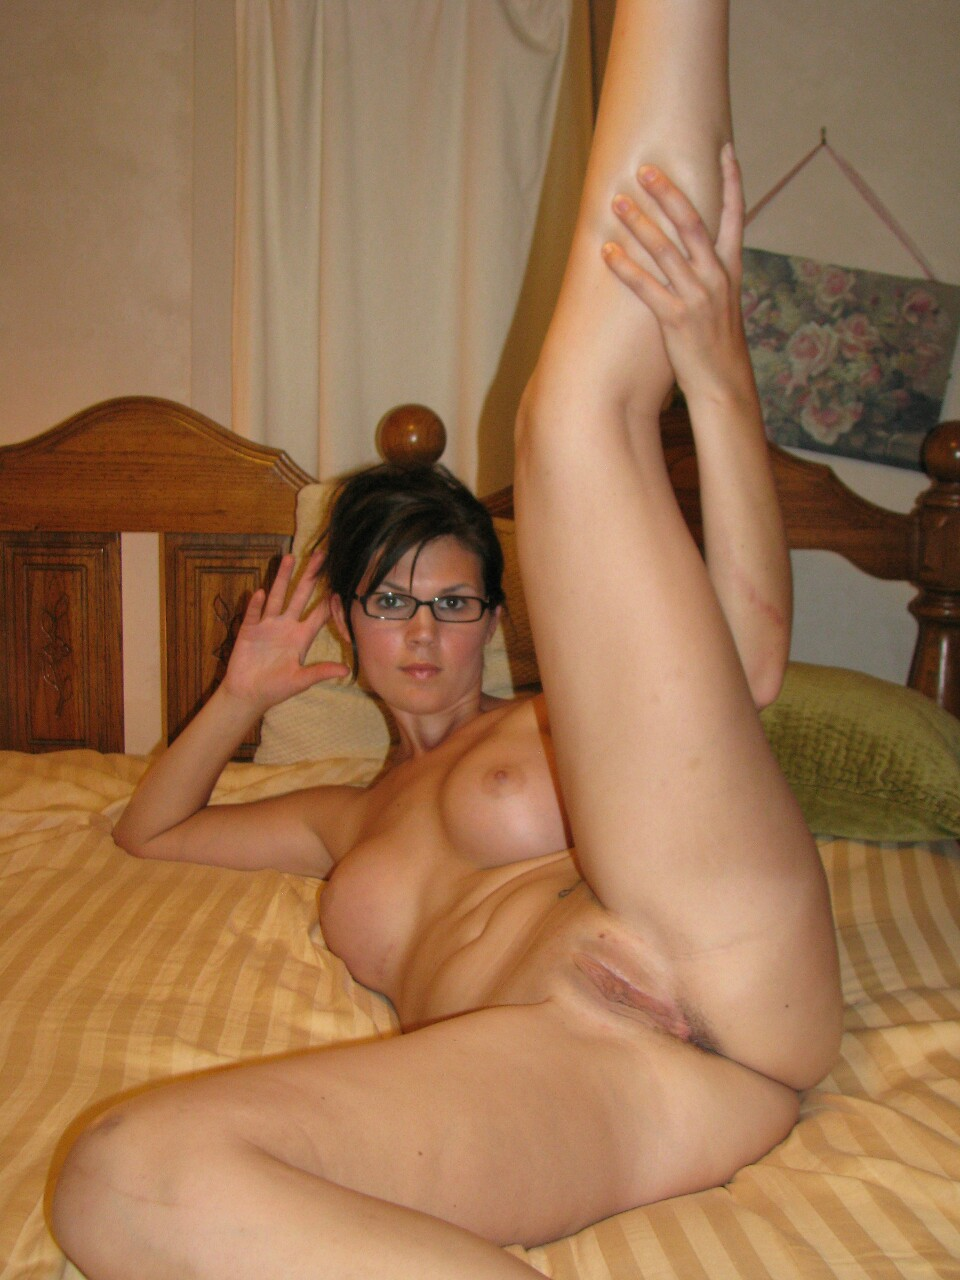 ASIAN MATURE WOMAN NUDE